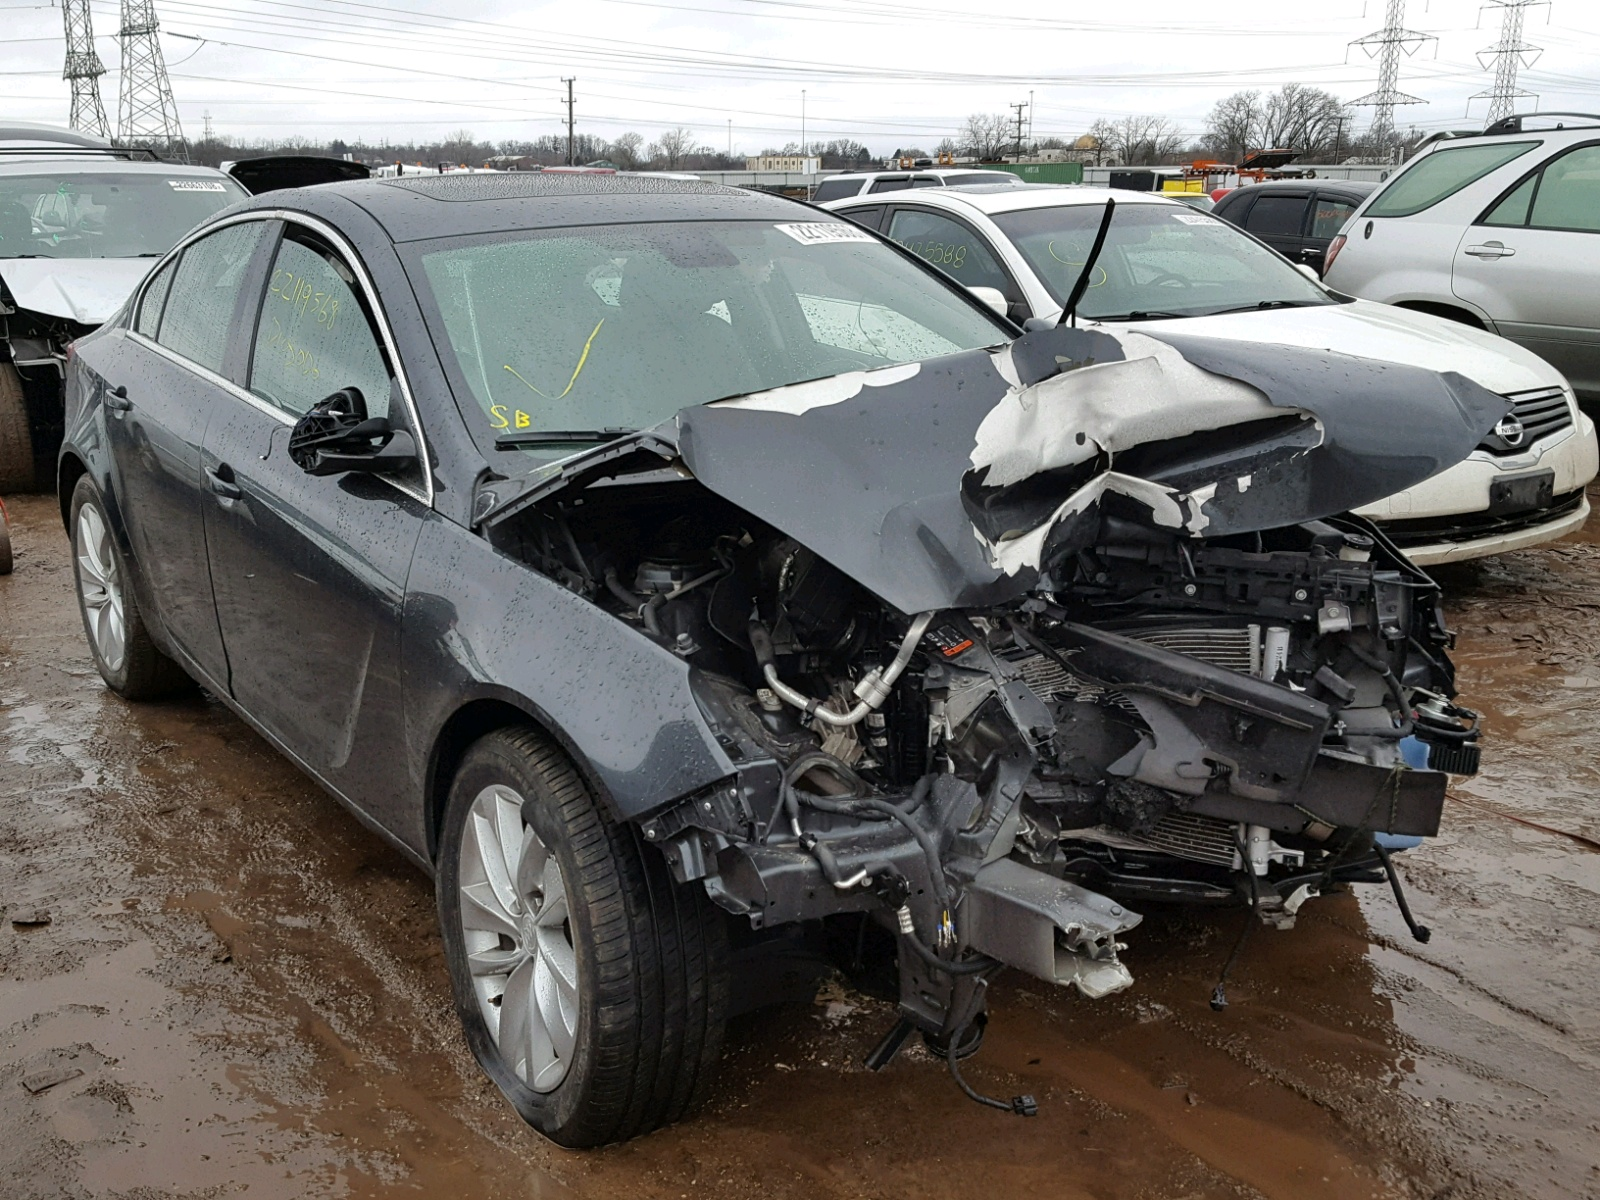 Buick Regal: Collision Damage Repair